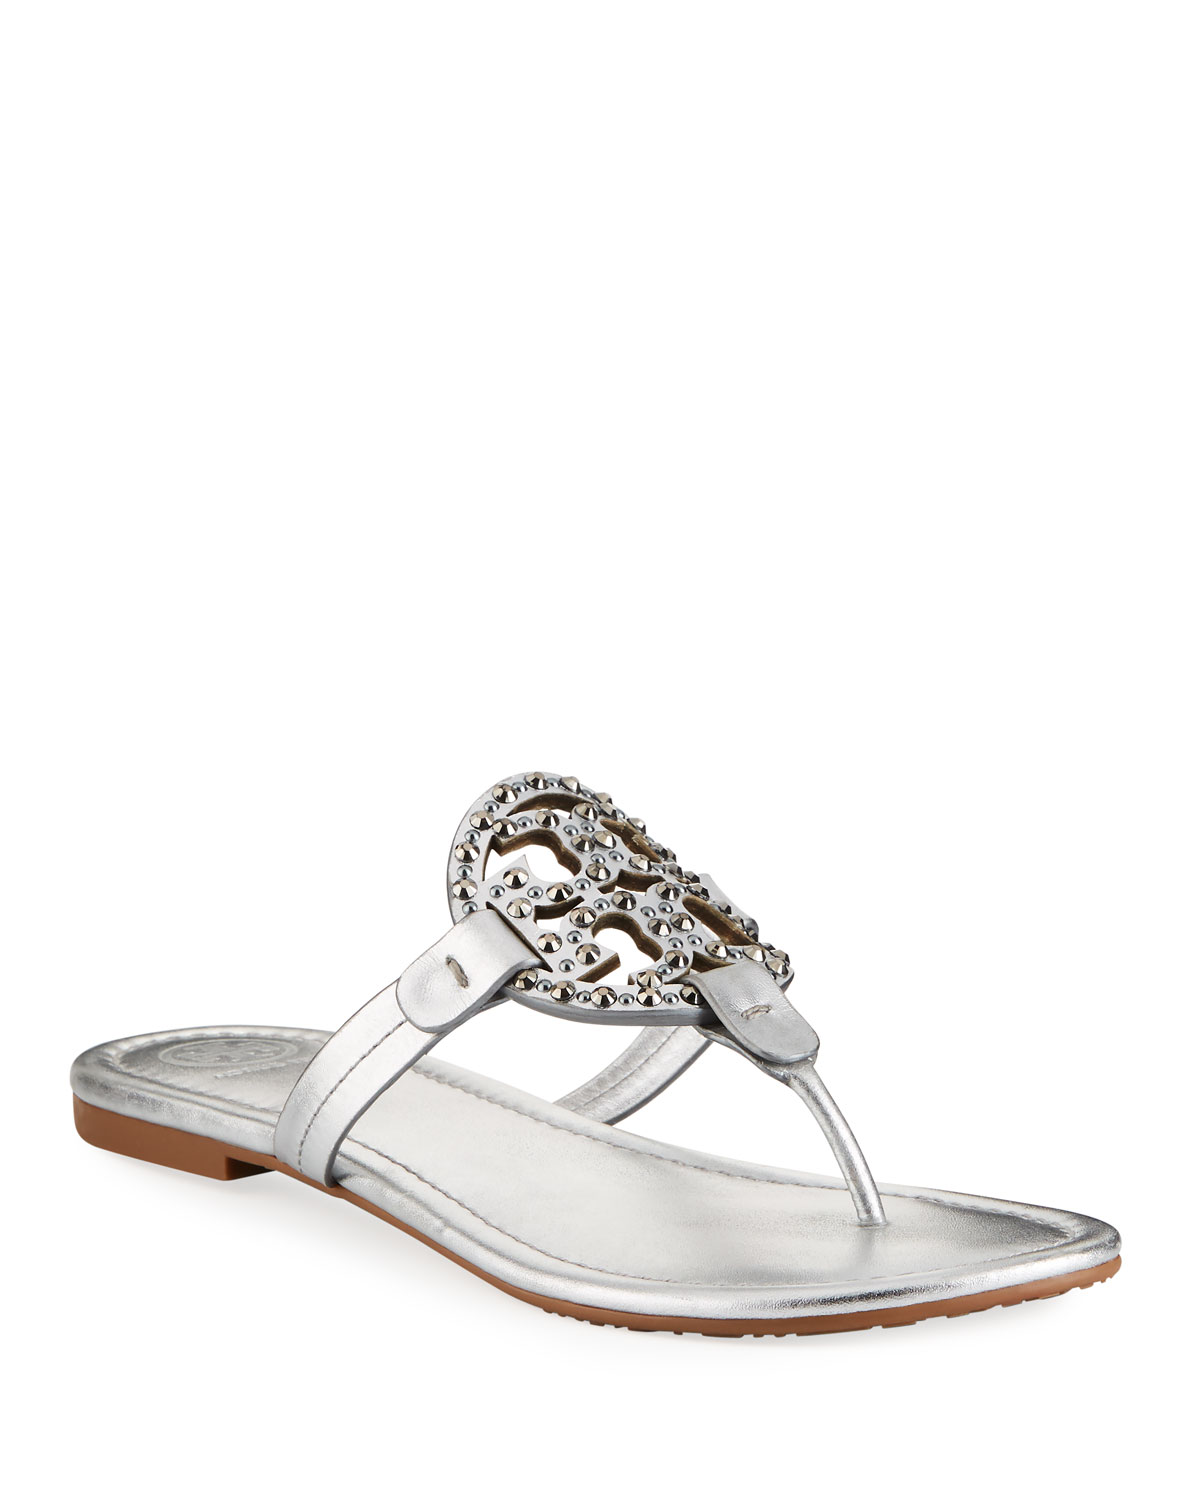 248f4d6d392 Tory BurchMiller Flat Metallic Leather Slide Sandals with Embellished Logo